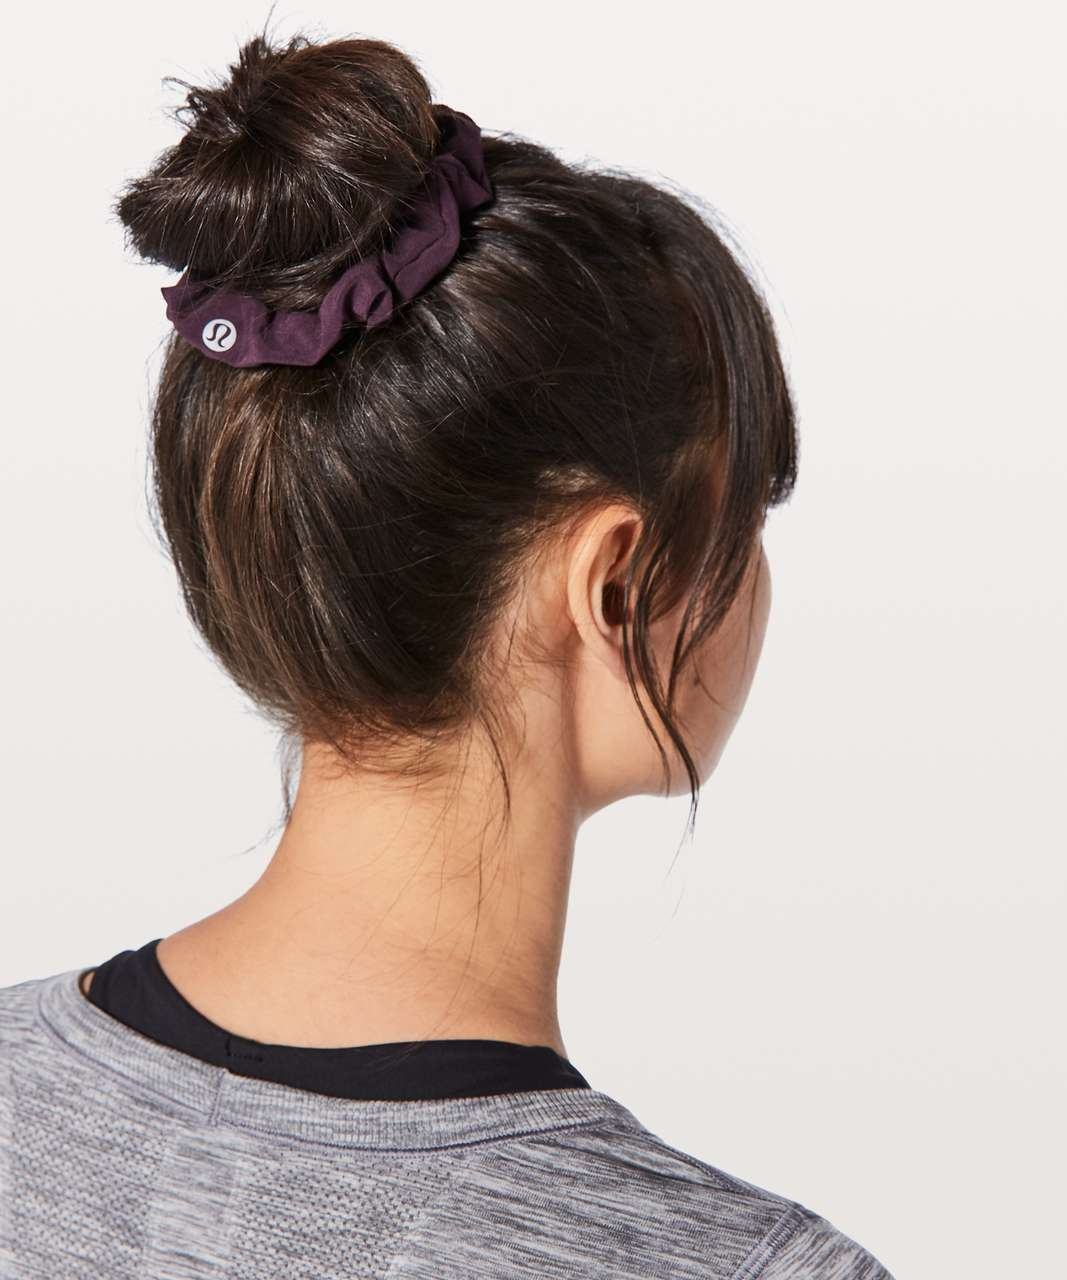 Lululemon Uplifting Scrunchie - Black Cherry